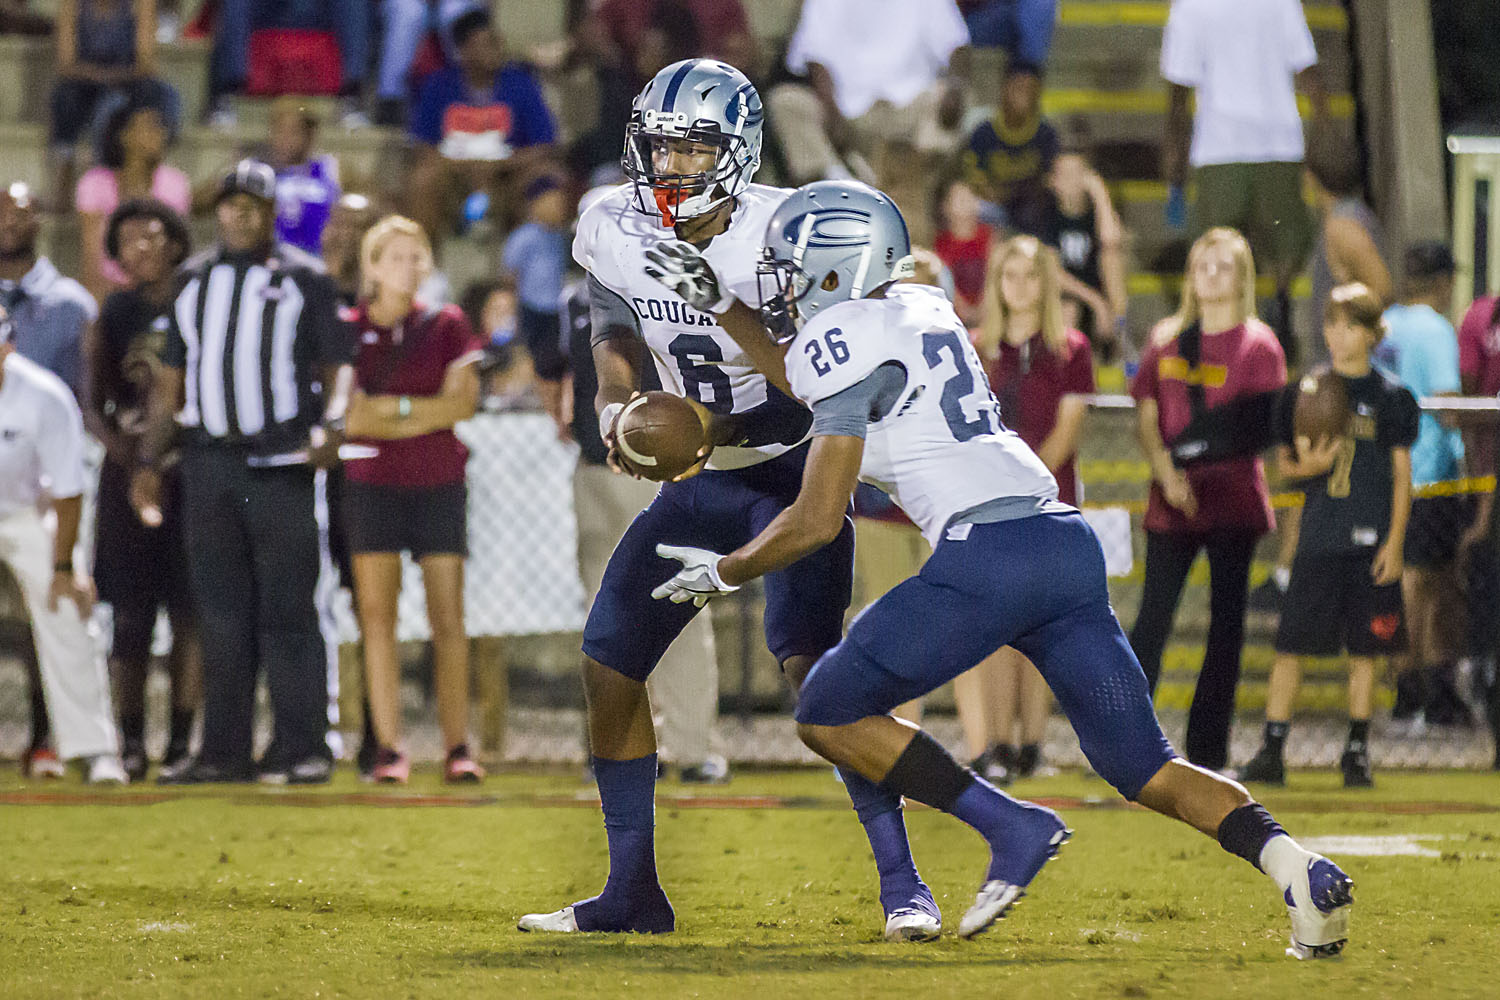 Cougars lick wounds, look to regroup against Center Point